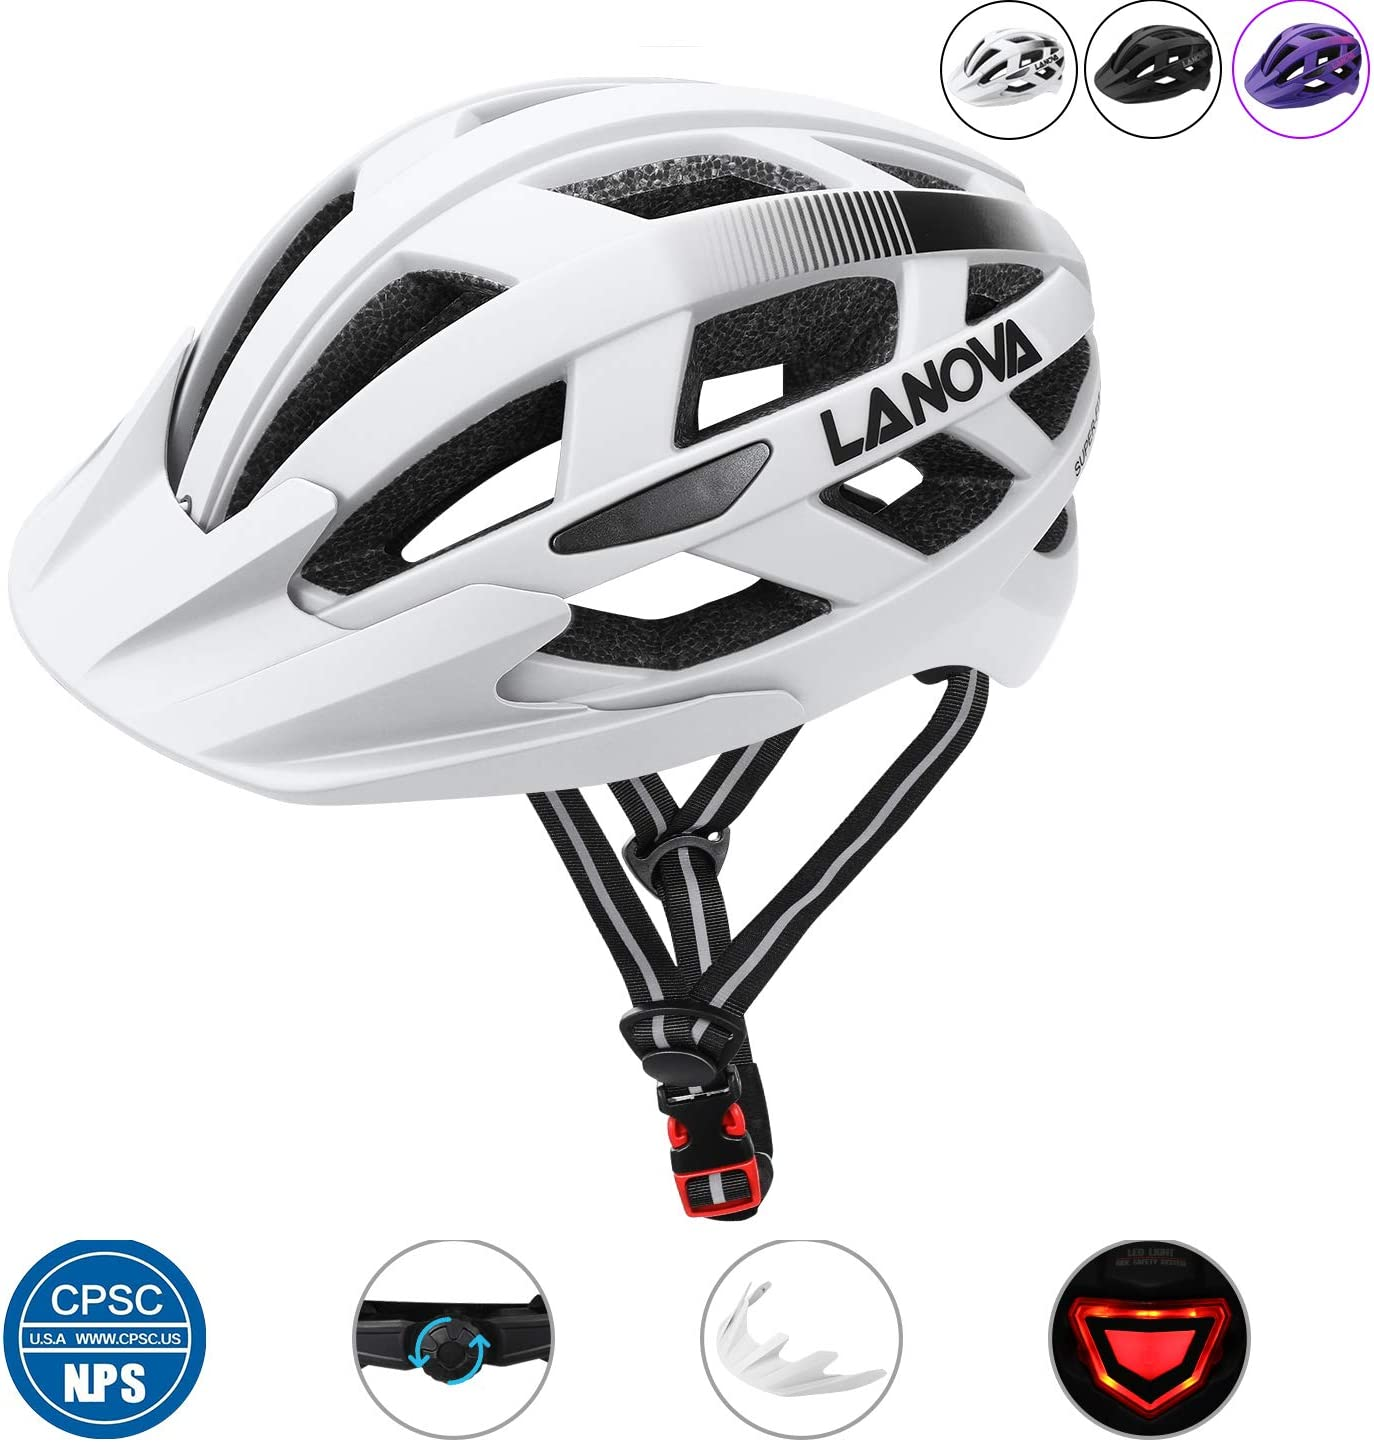 LANOVAGEAR Bike Helmet CPSC Certified Youth Adult Mountain Road Bicycle Helmet with Rechargeable LED Safety Light with Detachable Visor for Men Women